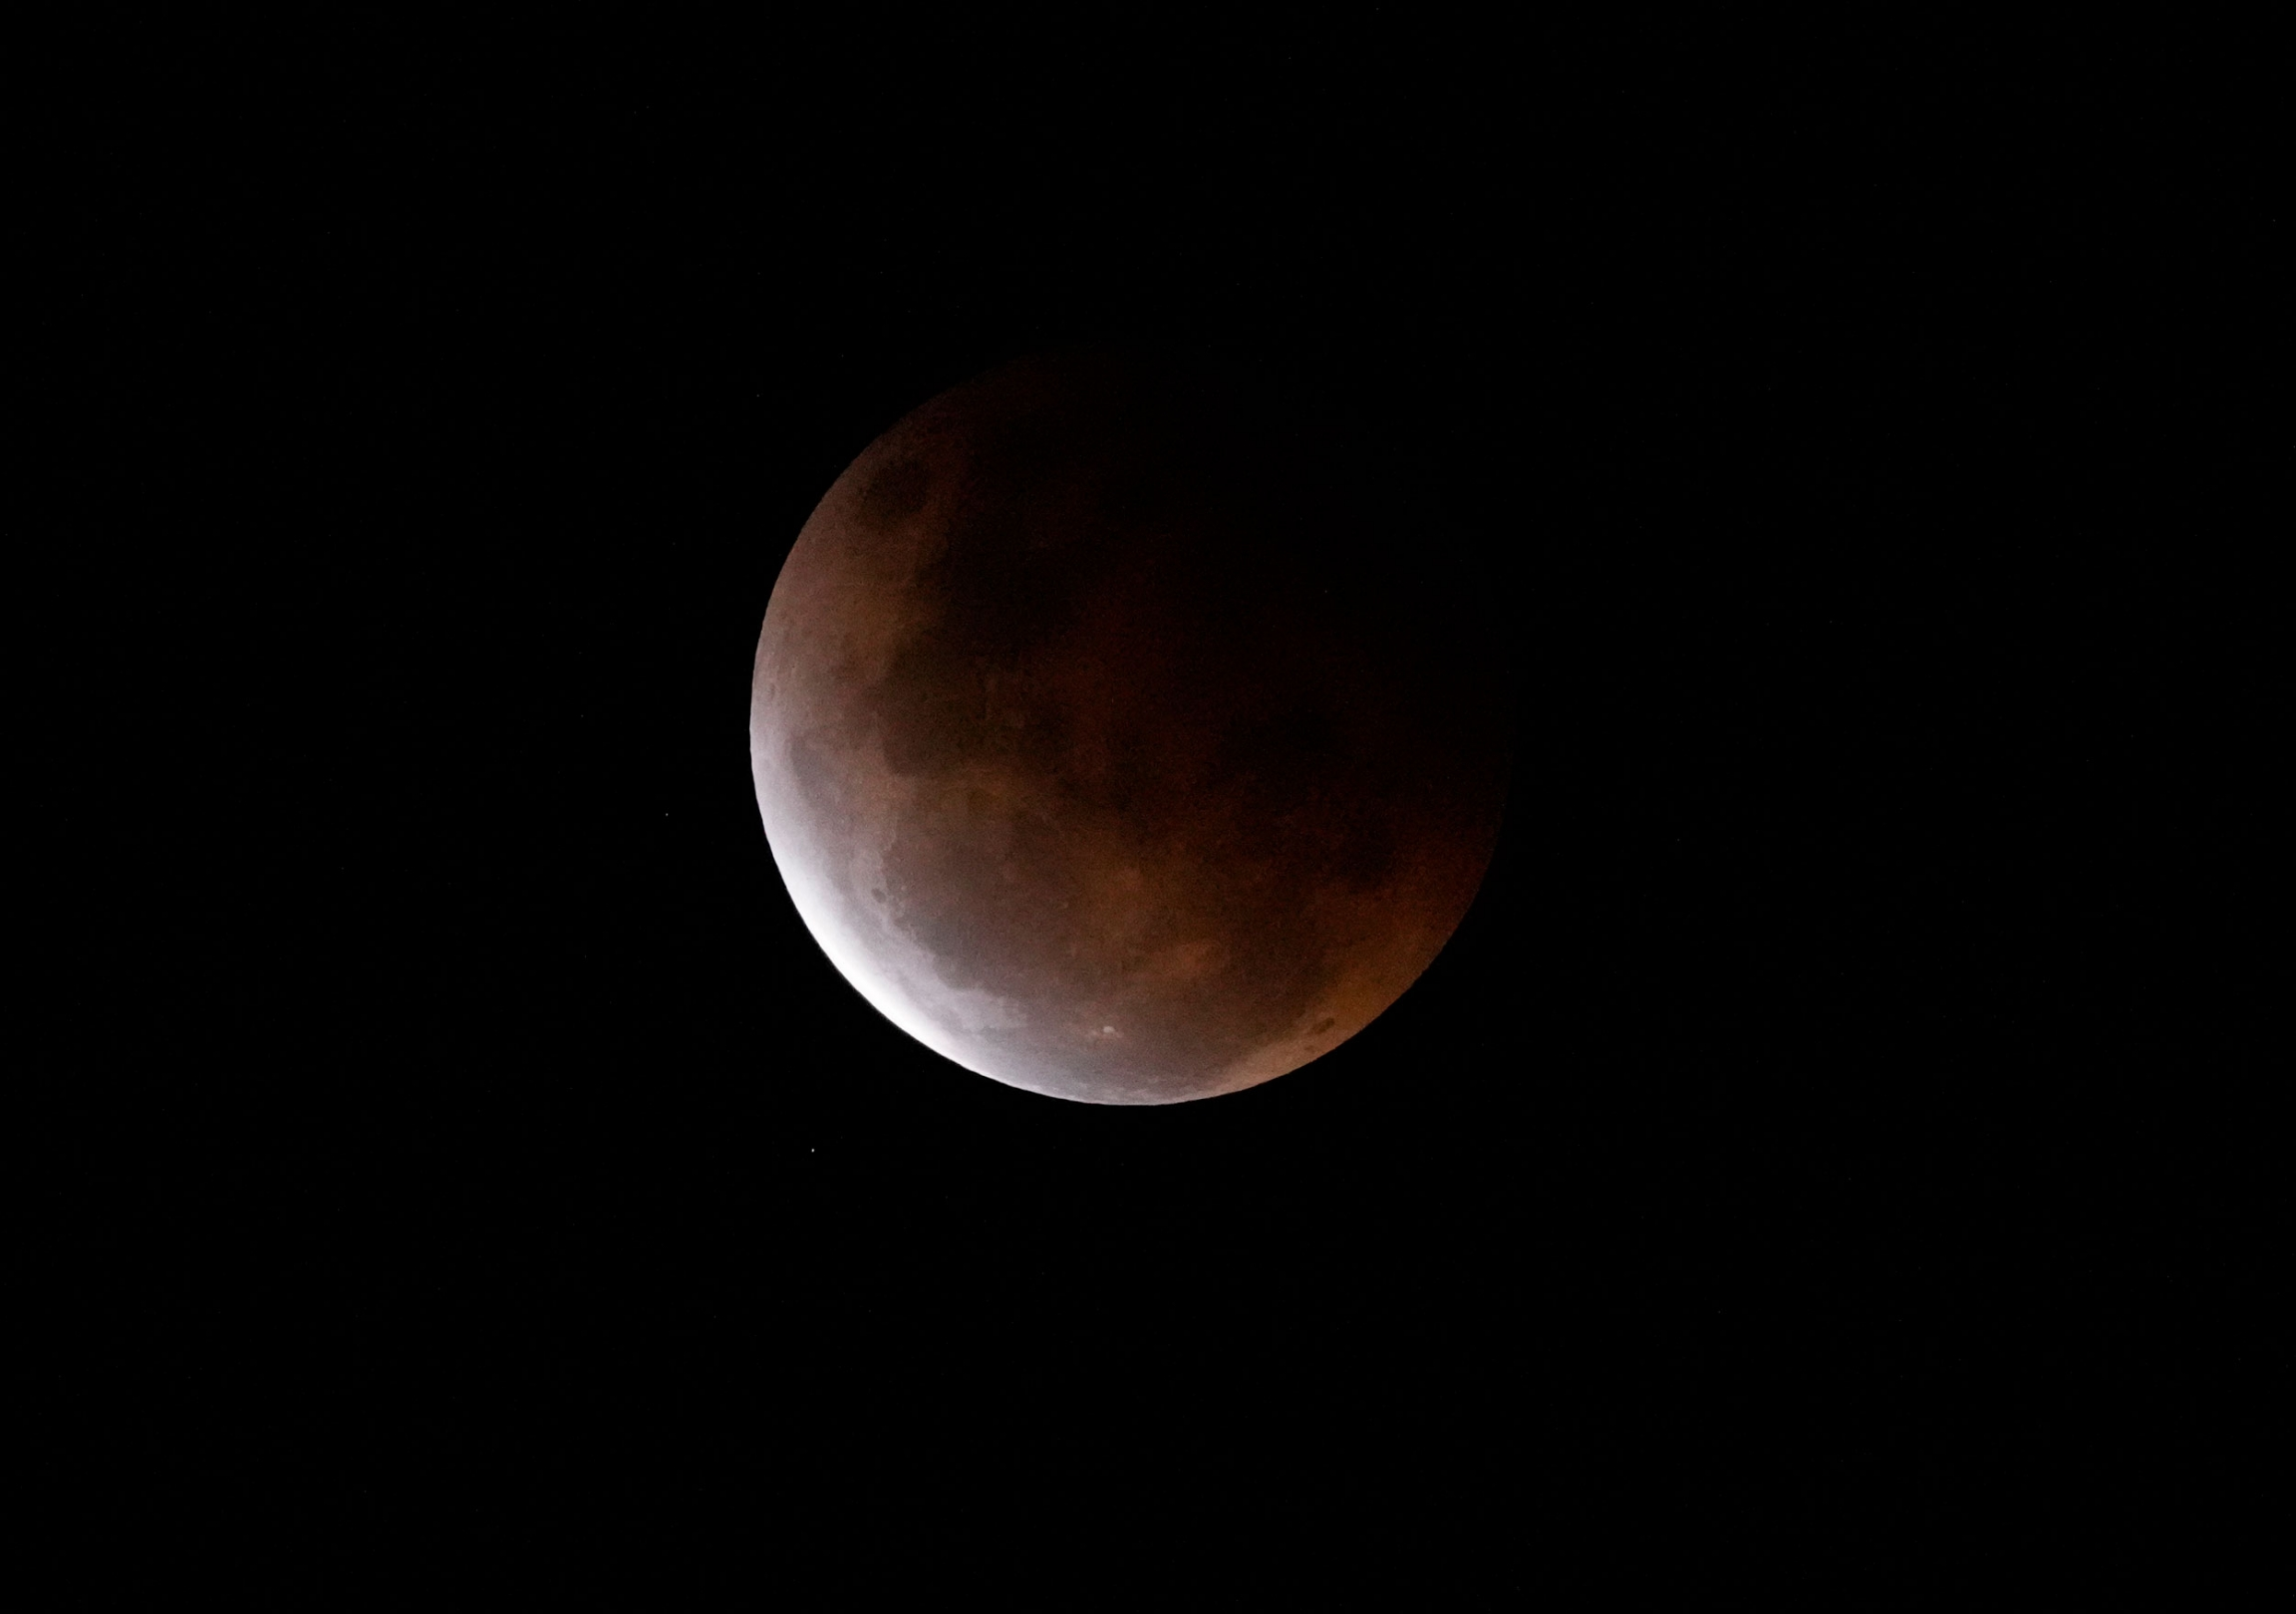 The super blood moon shown with the sun's orange colors reflected on the surface.